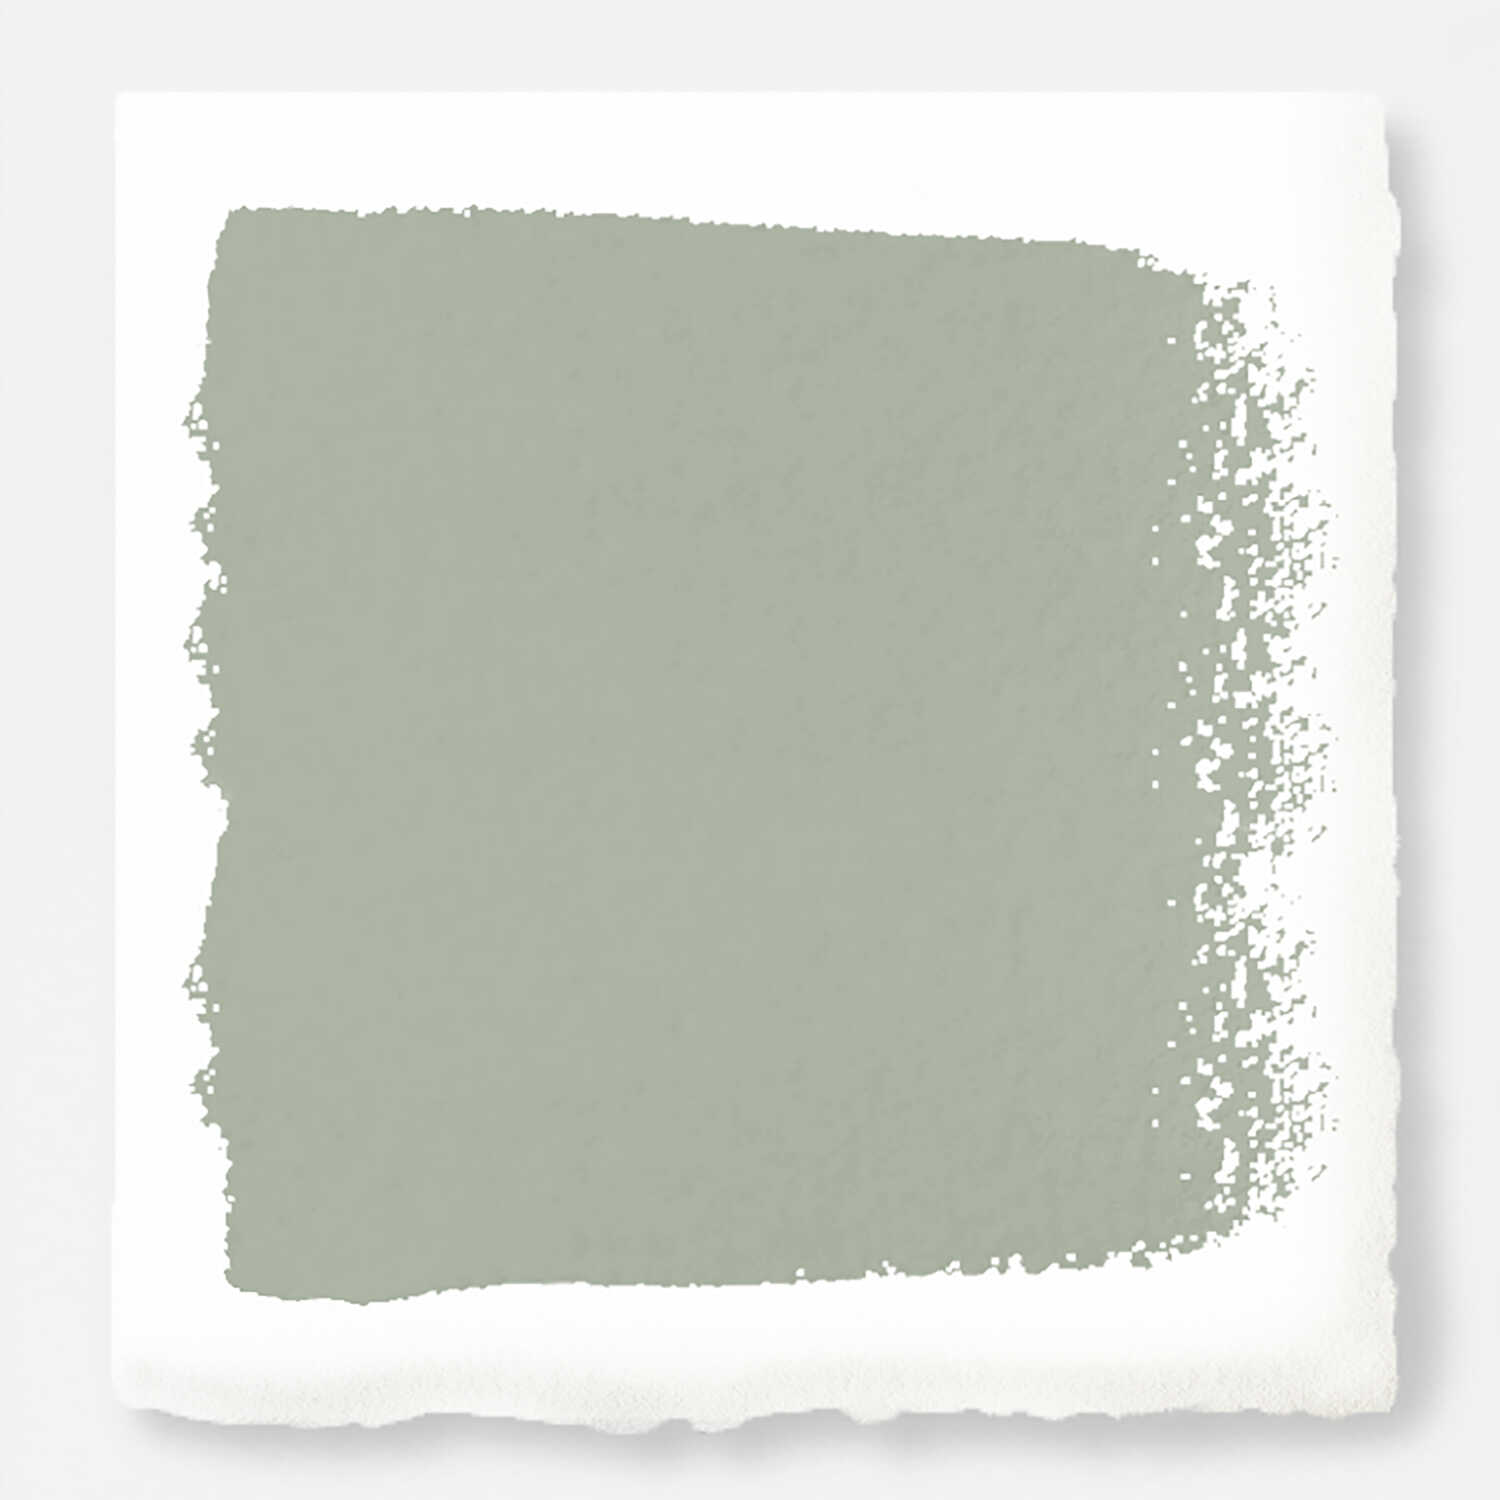 Magnolia Home  Semi-Gloss  Early Riser  Exterior Paint and Primer  1 gal.